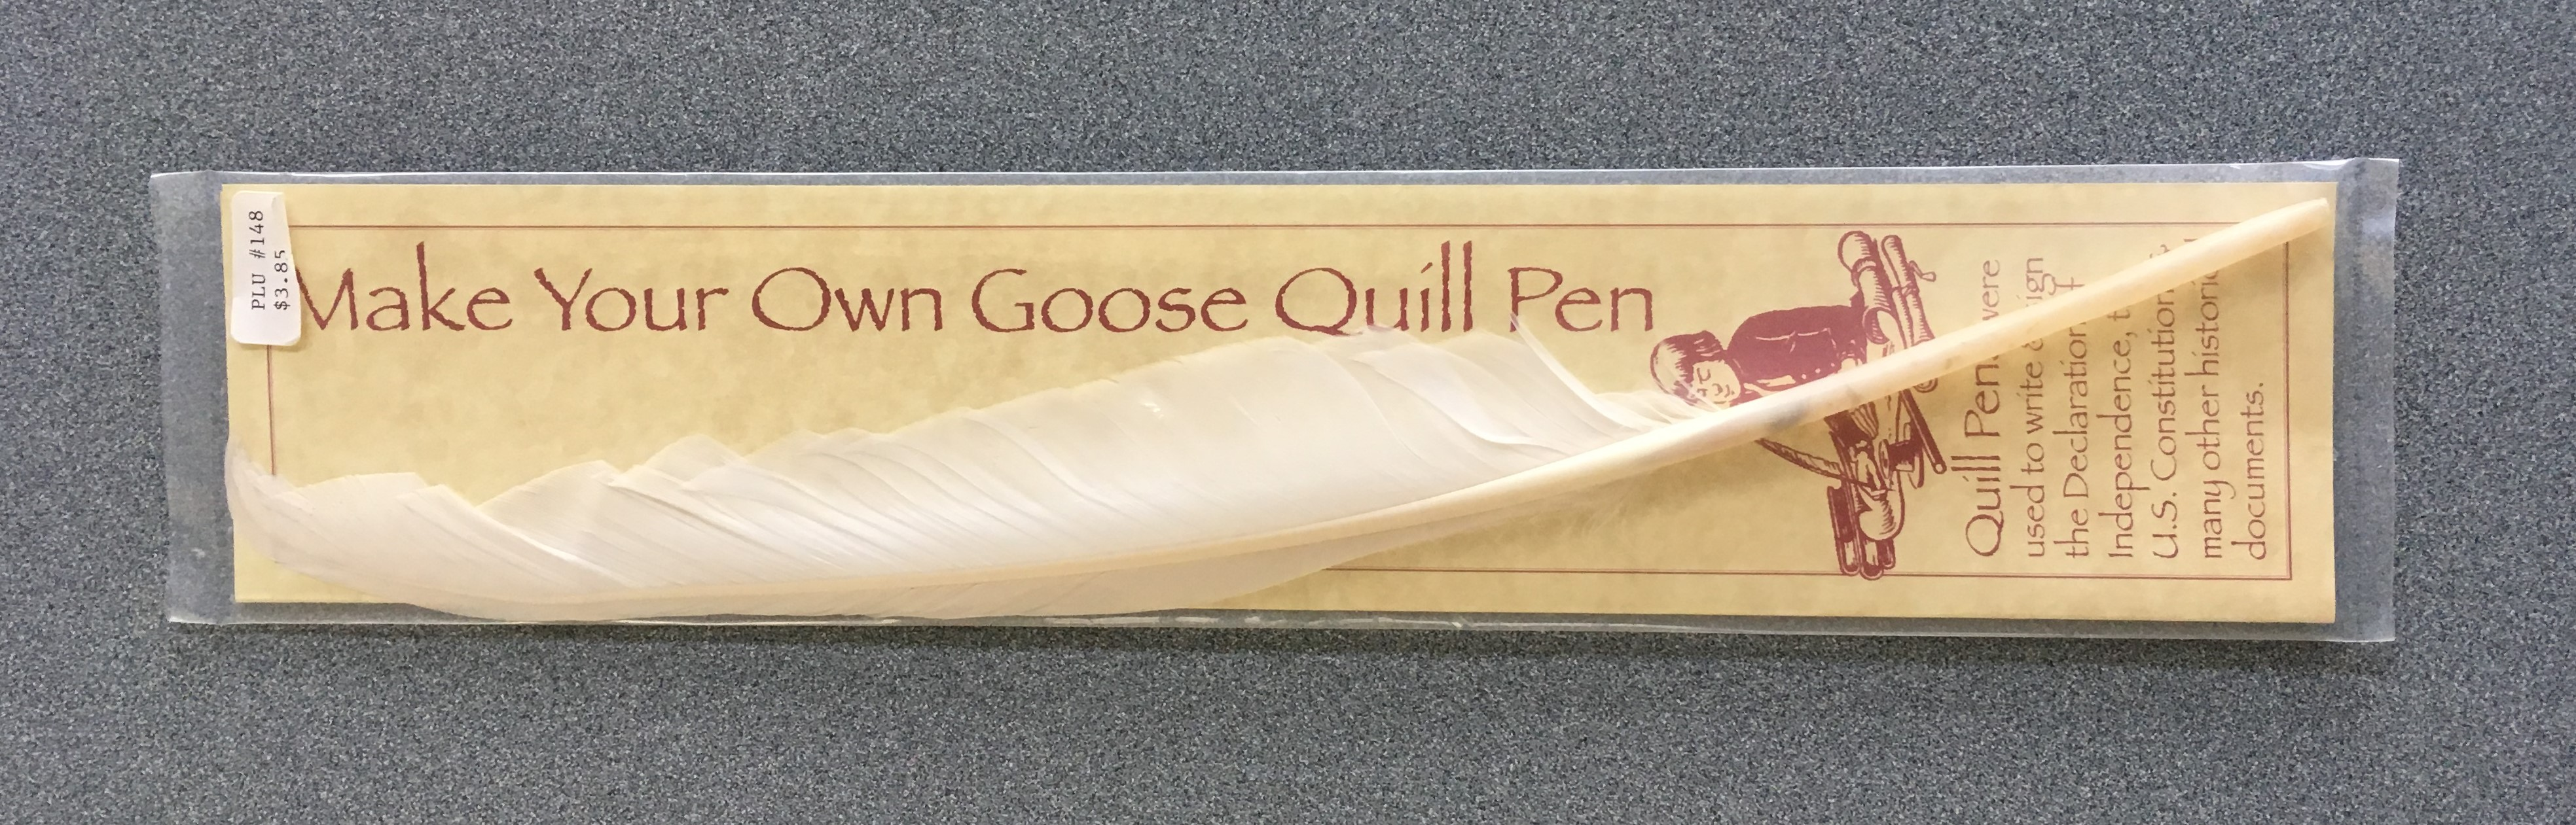 Make Your Own Goose Quill Pen